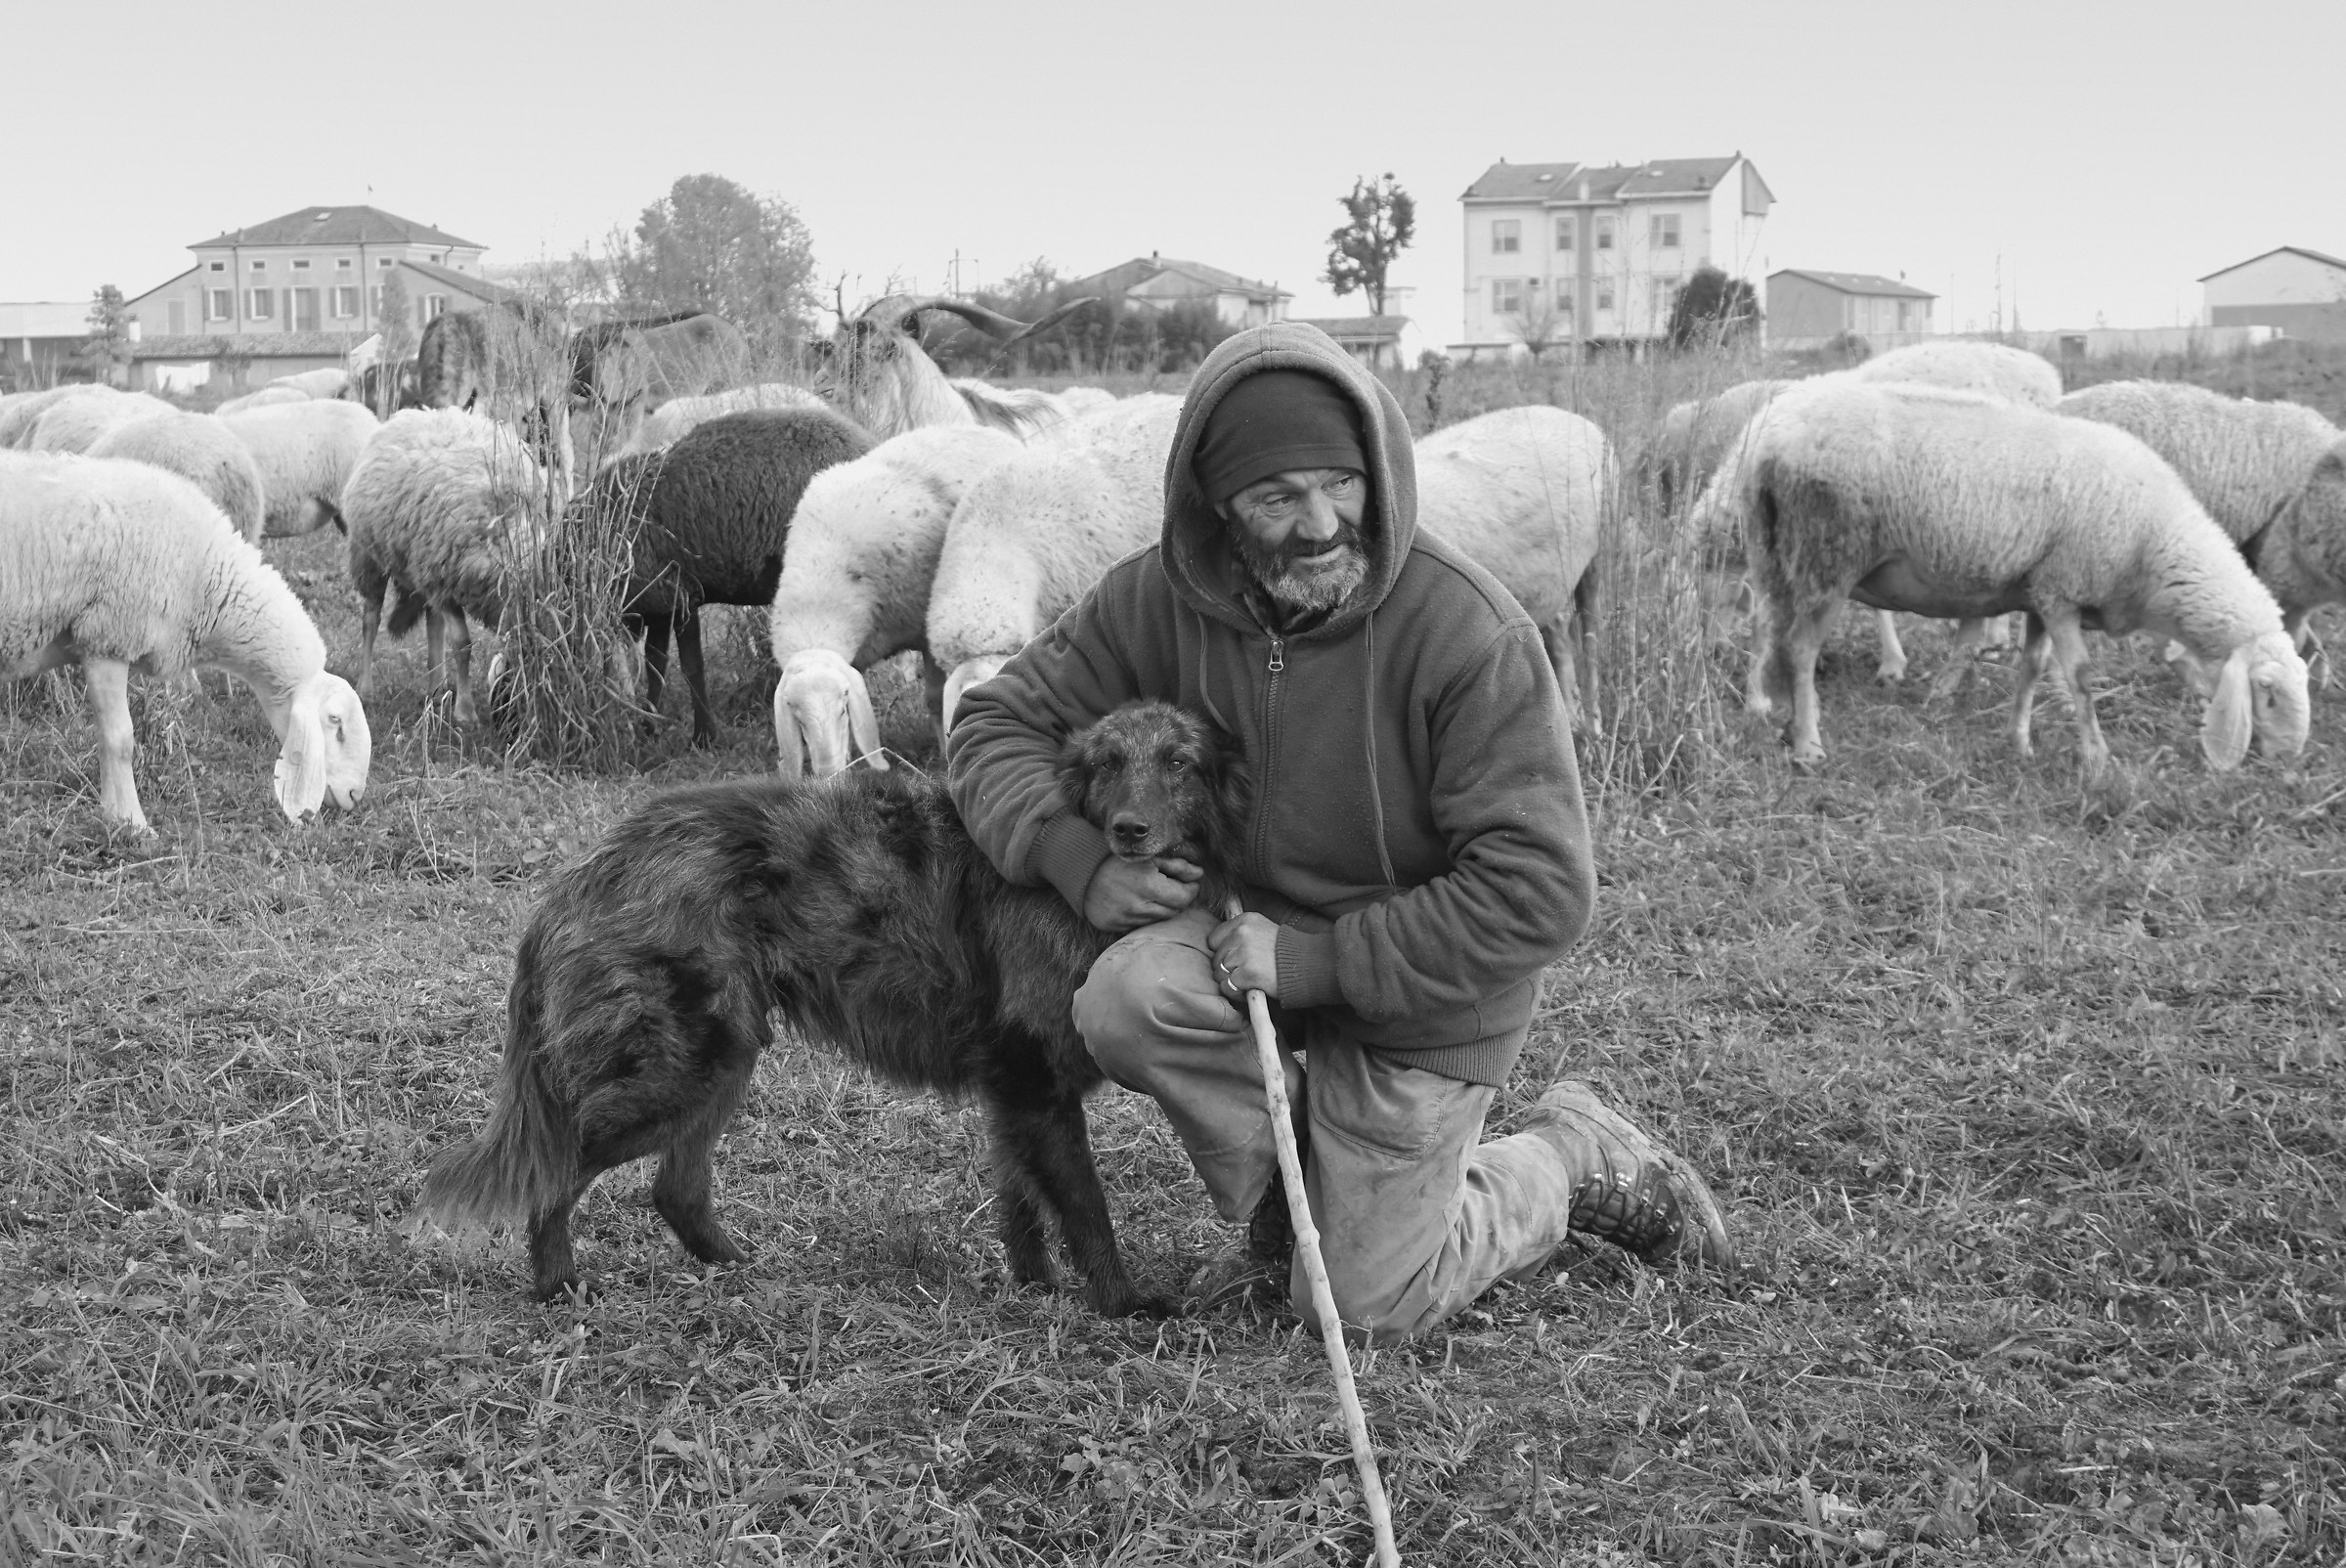 The Shepherd and his dog...